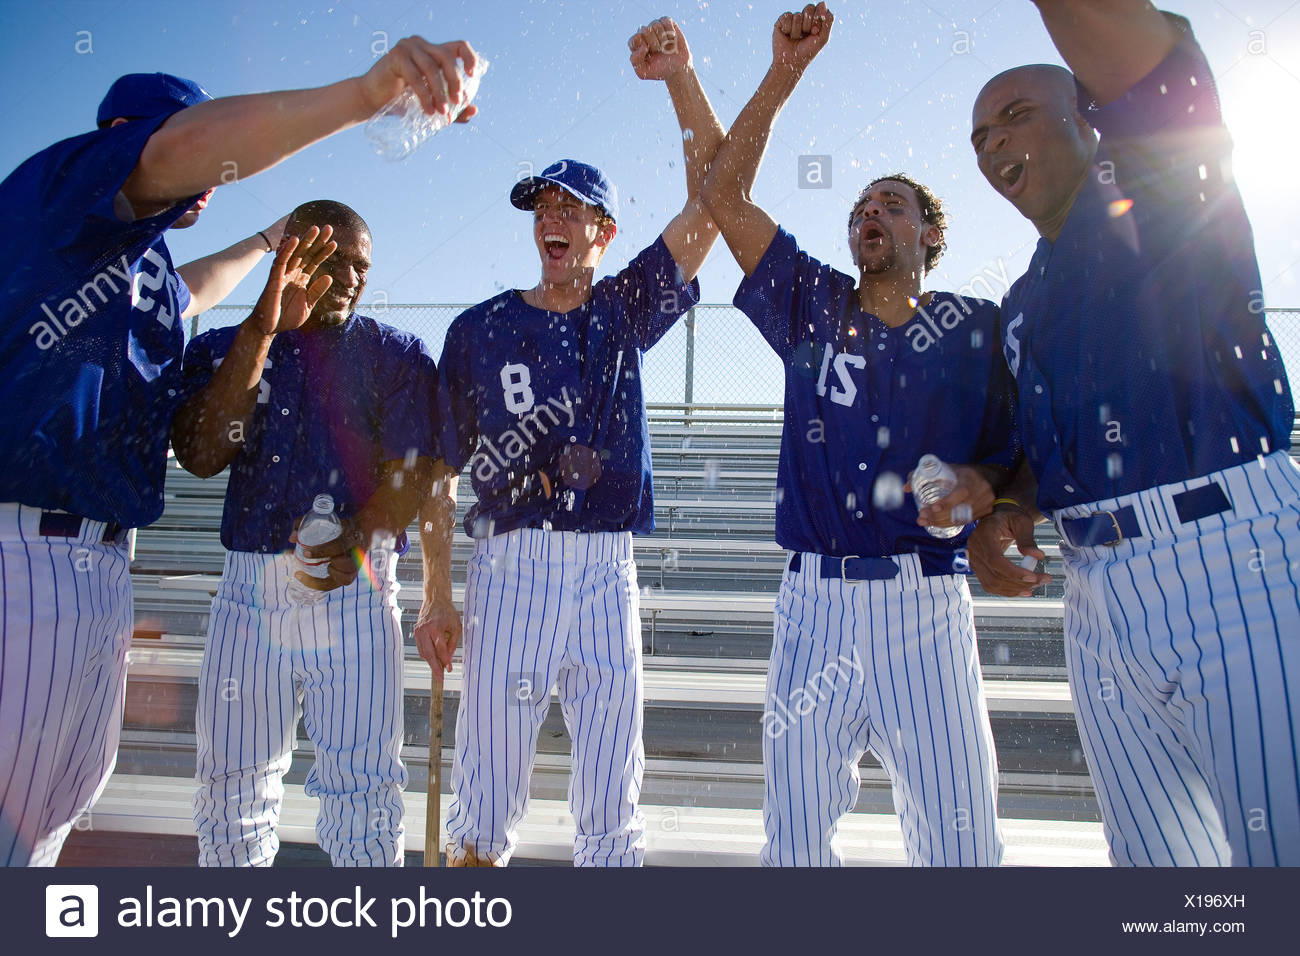 Baseball team, in blue uniform, punching air in victory post match, cheering lens flare - Stock Image